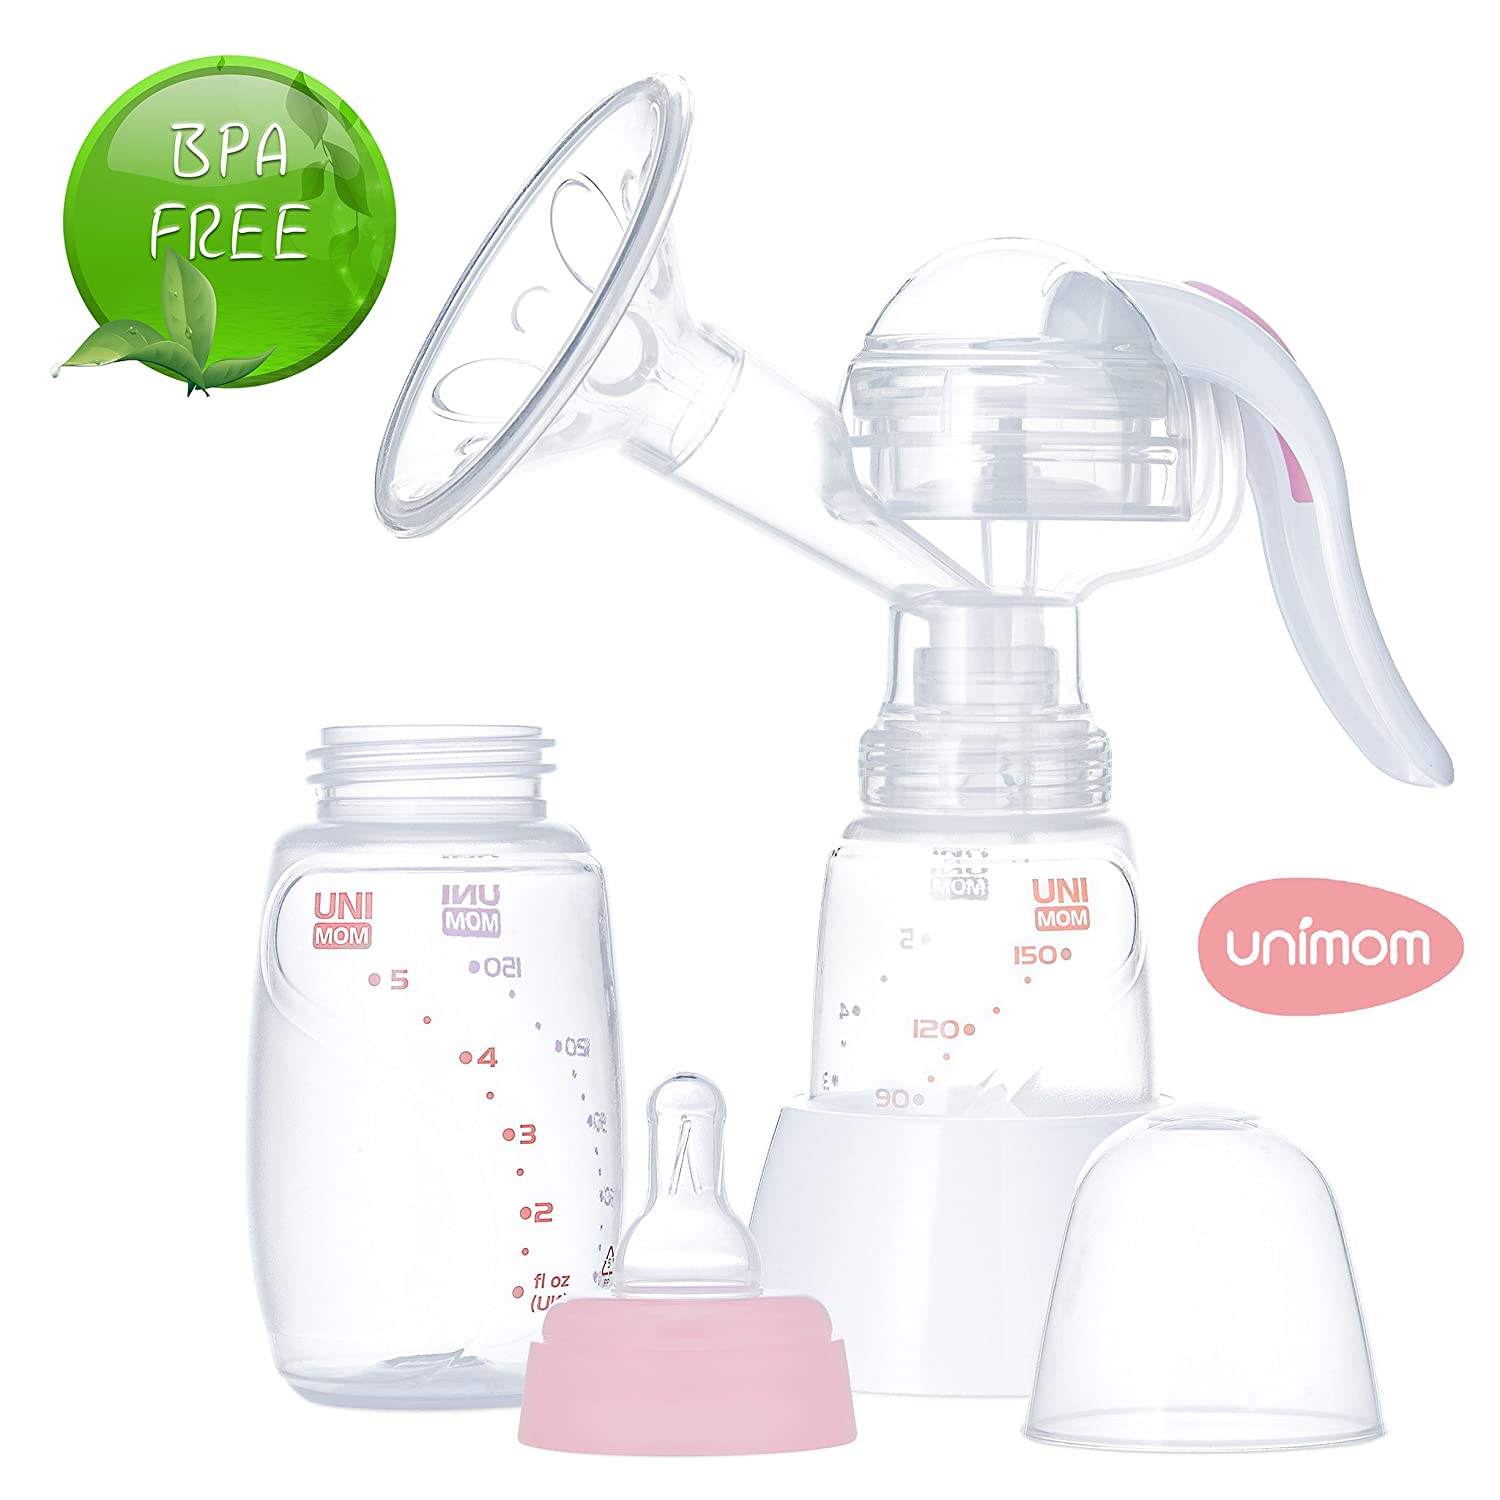 Amazon.com : Manual Breast Pump with Soft Silicone Massaging Breast Shield - Ergonomic Rubber Handle - Includes Bottle and Stand - BPA Free - by Unimom : ...